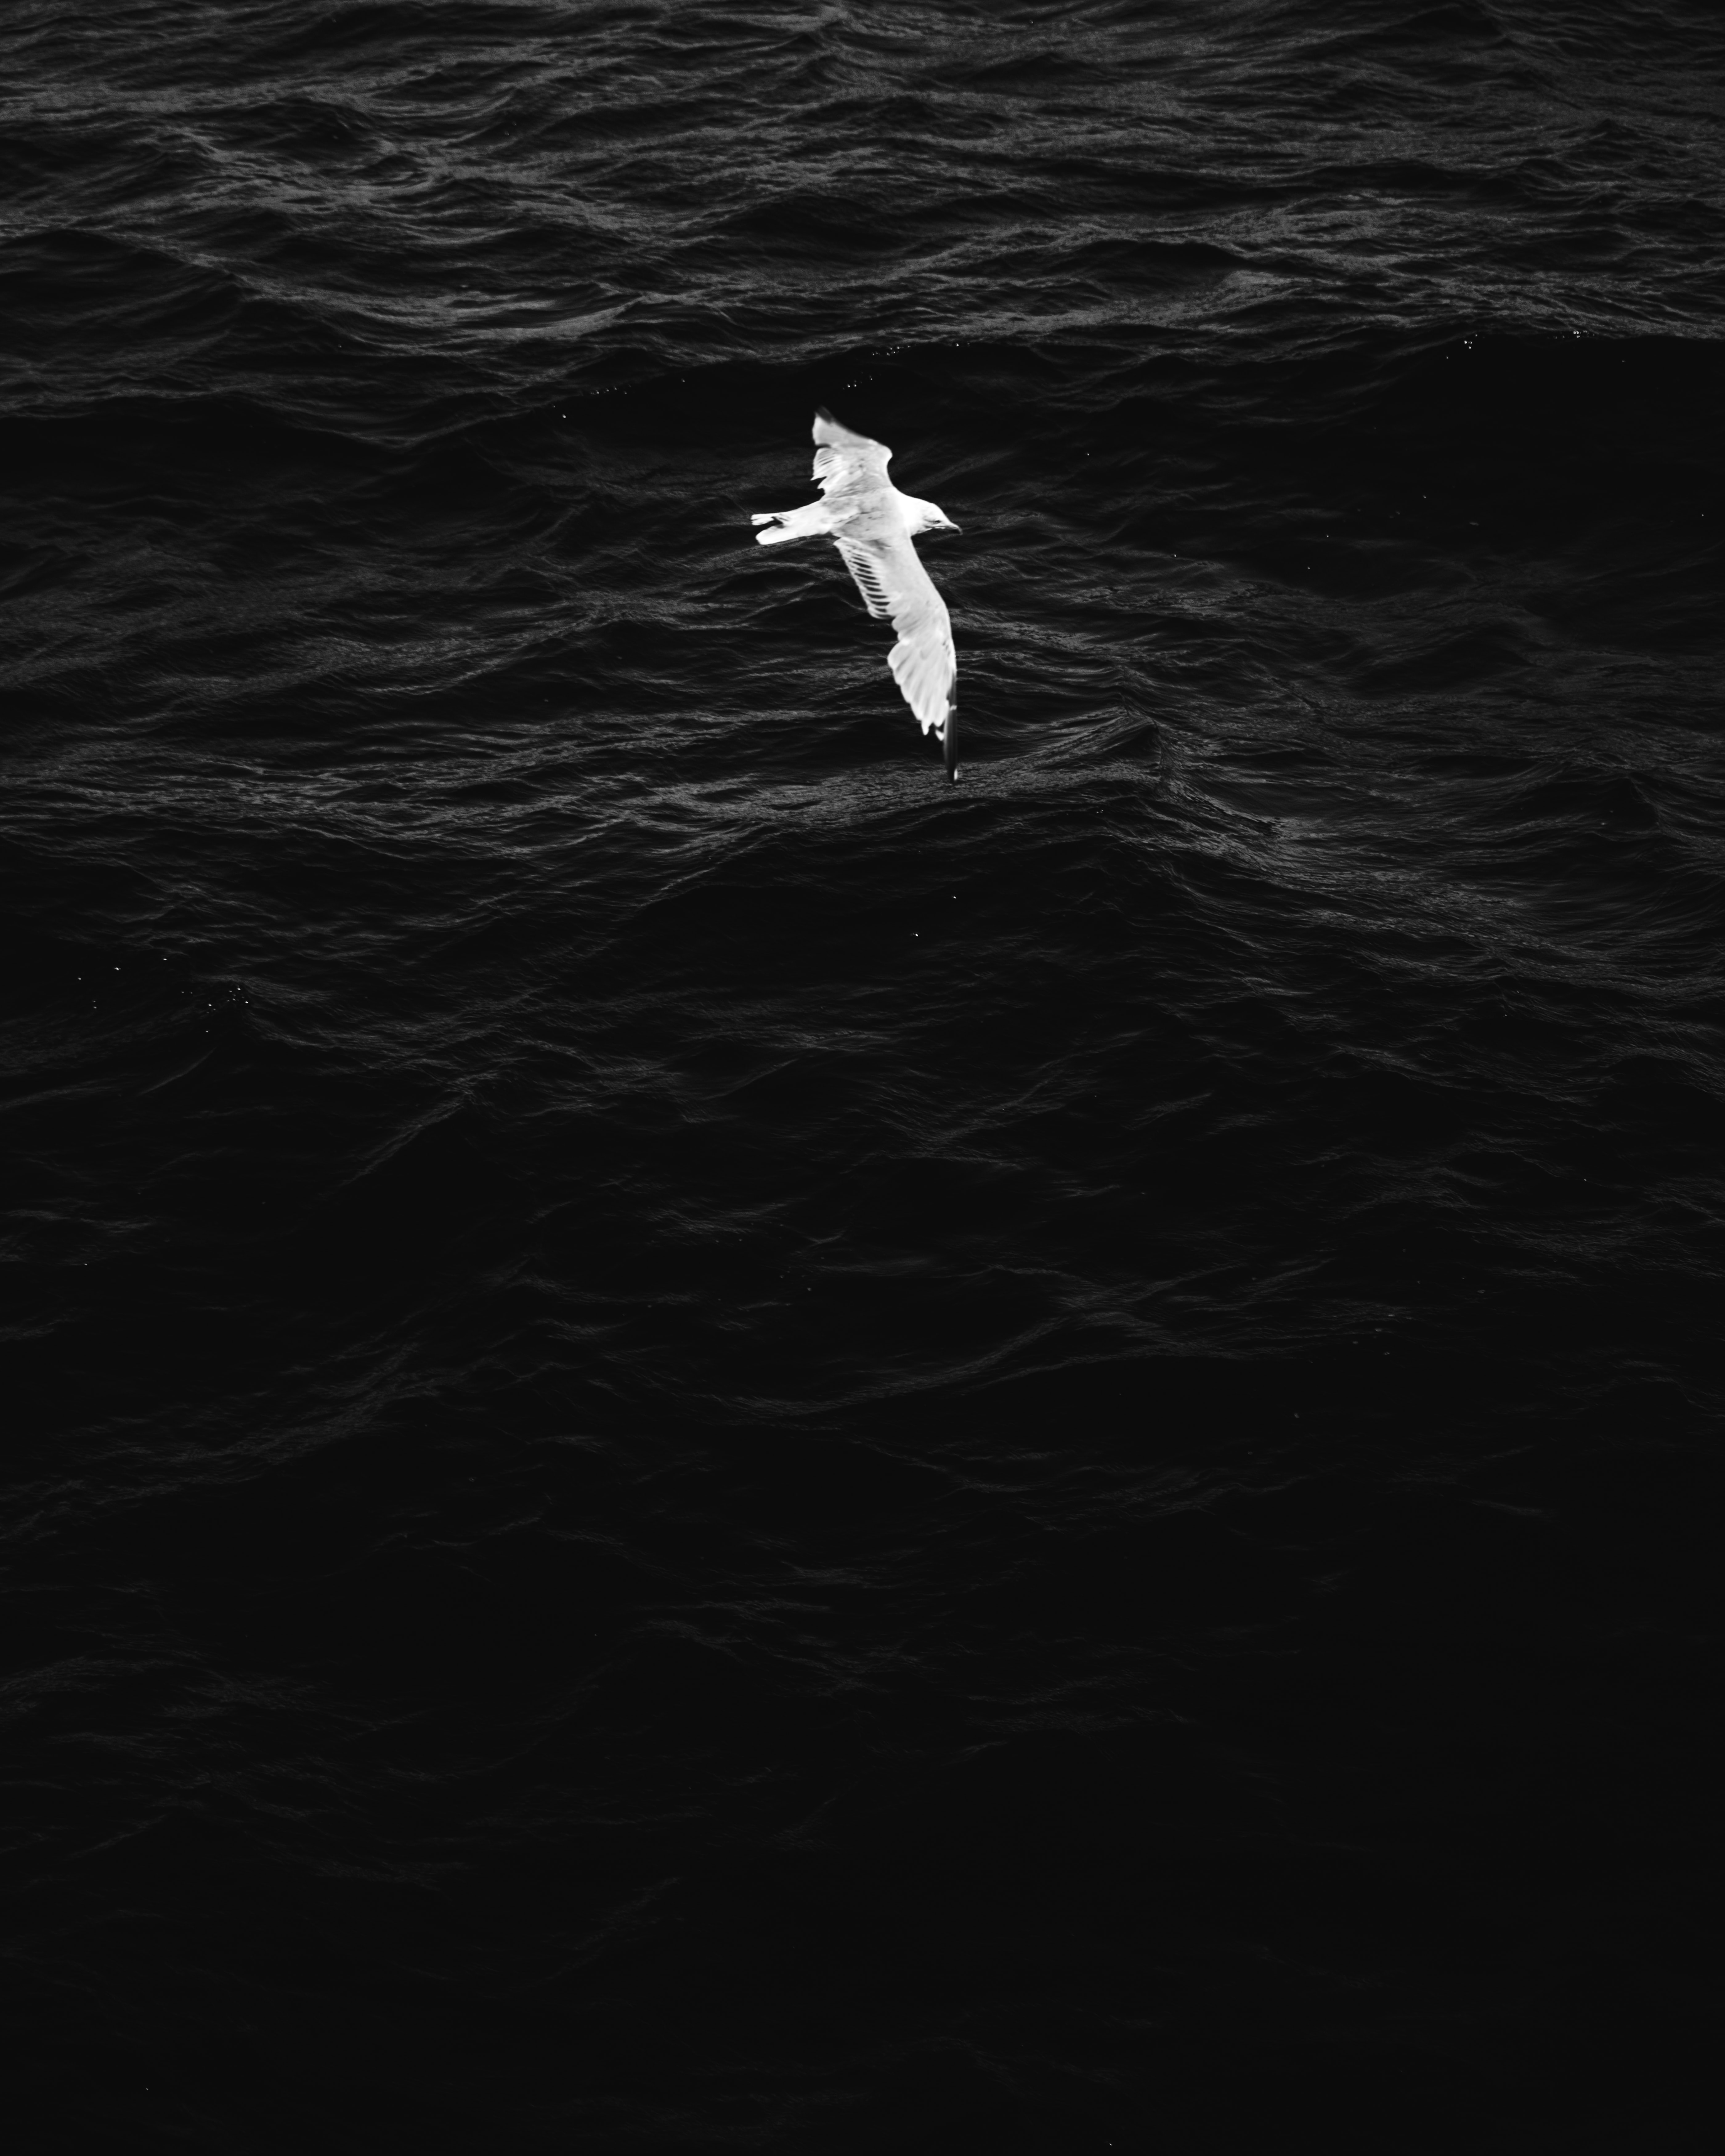 soaring white bird over rippling water